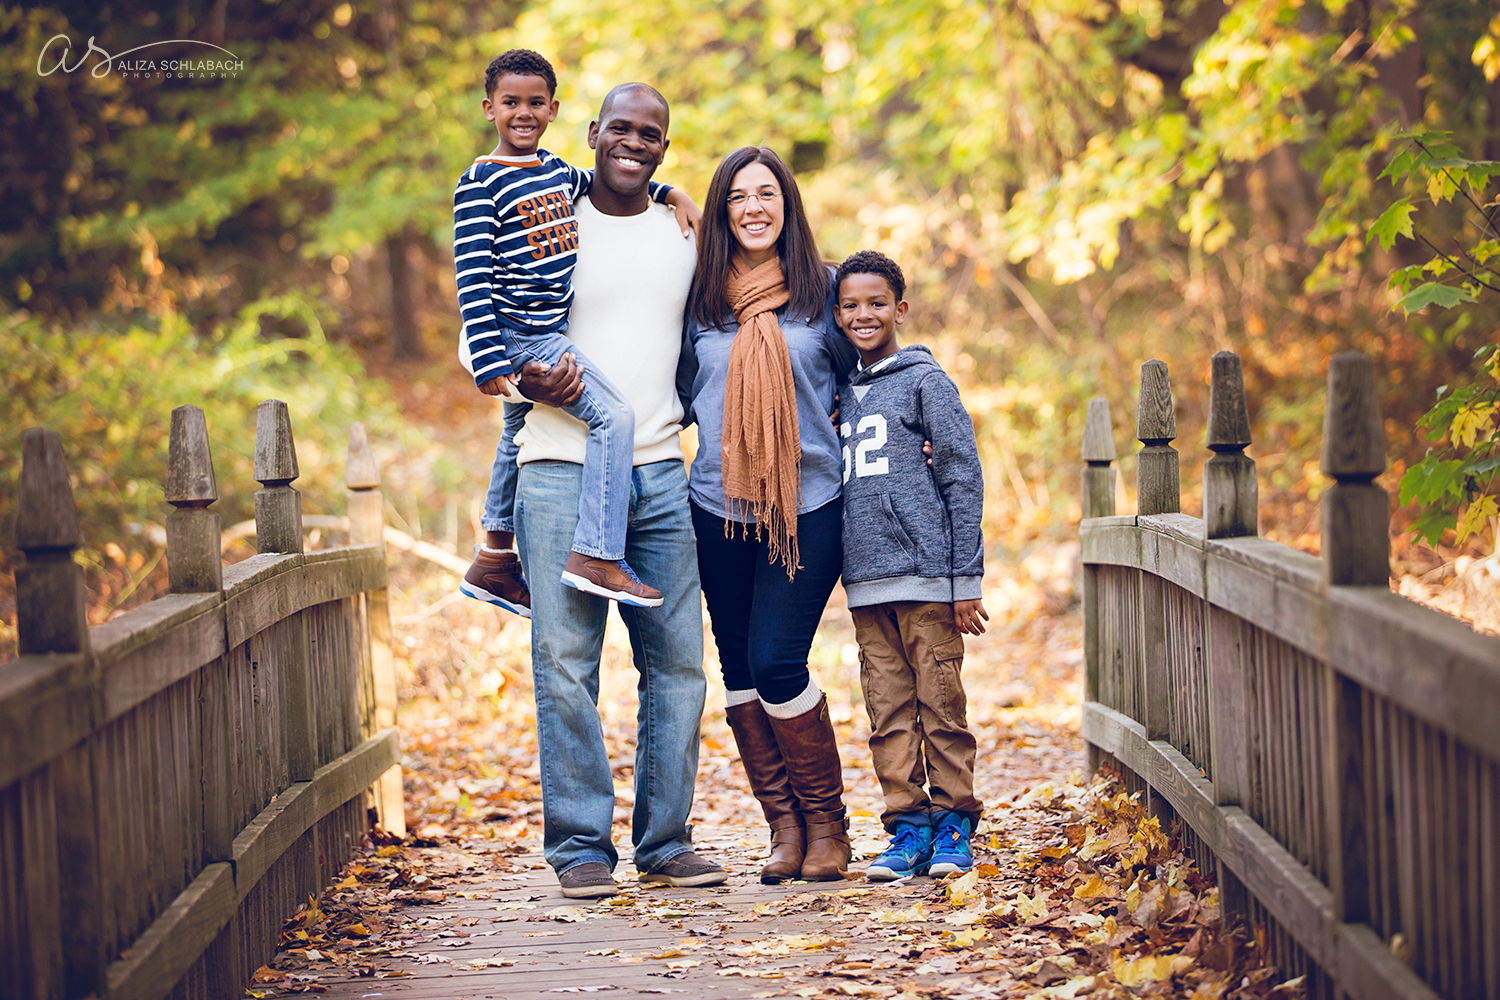 Fall portrait at golden hour on a bridge of a mixed race family